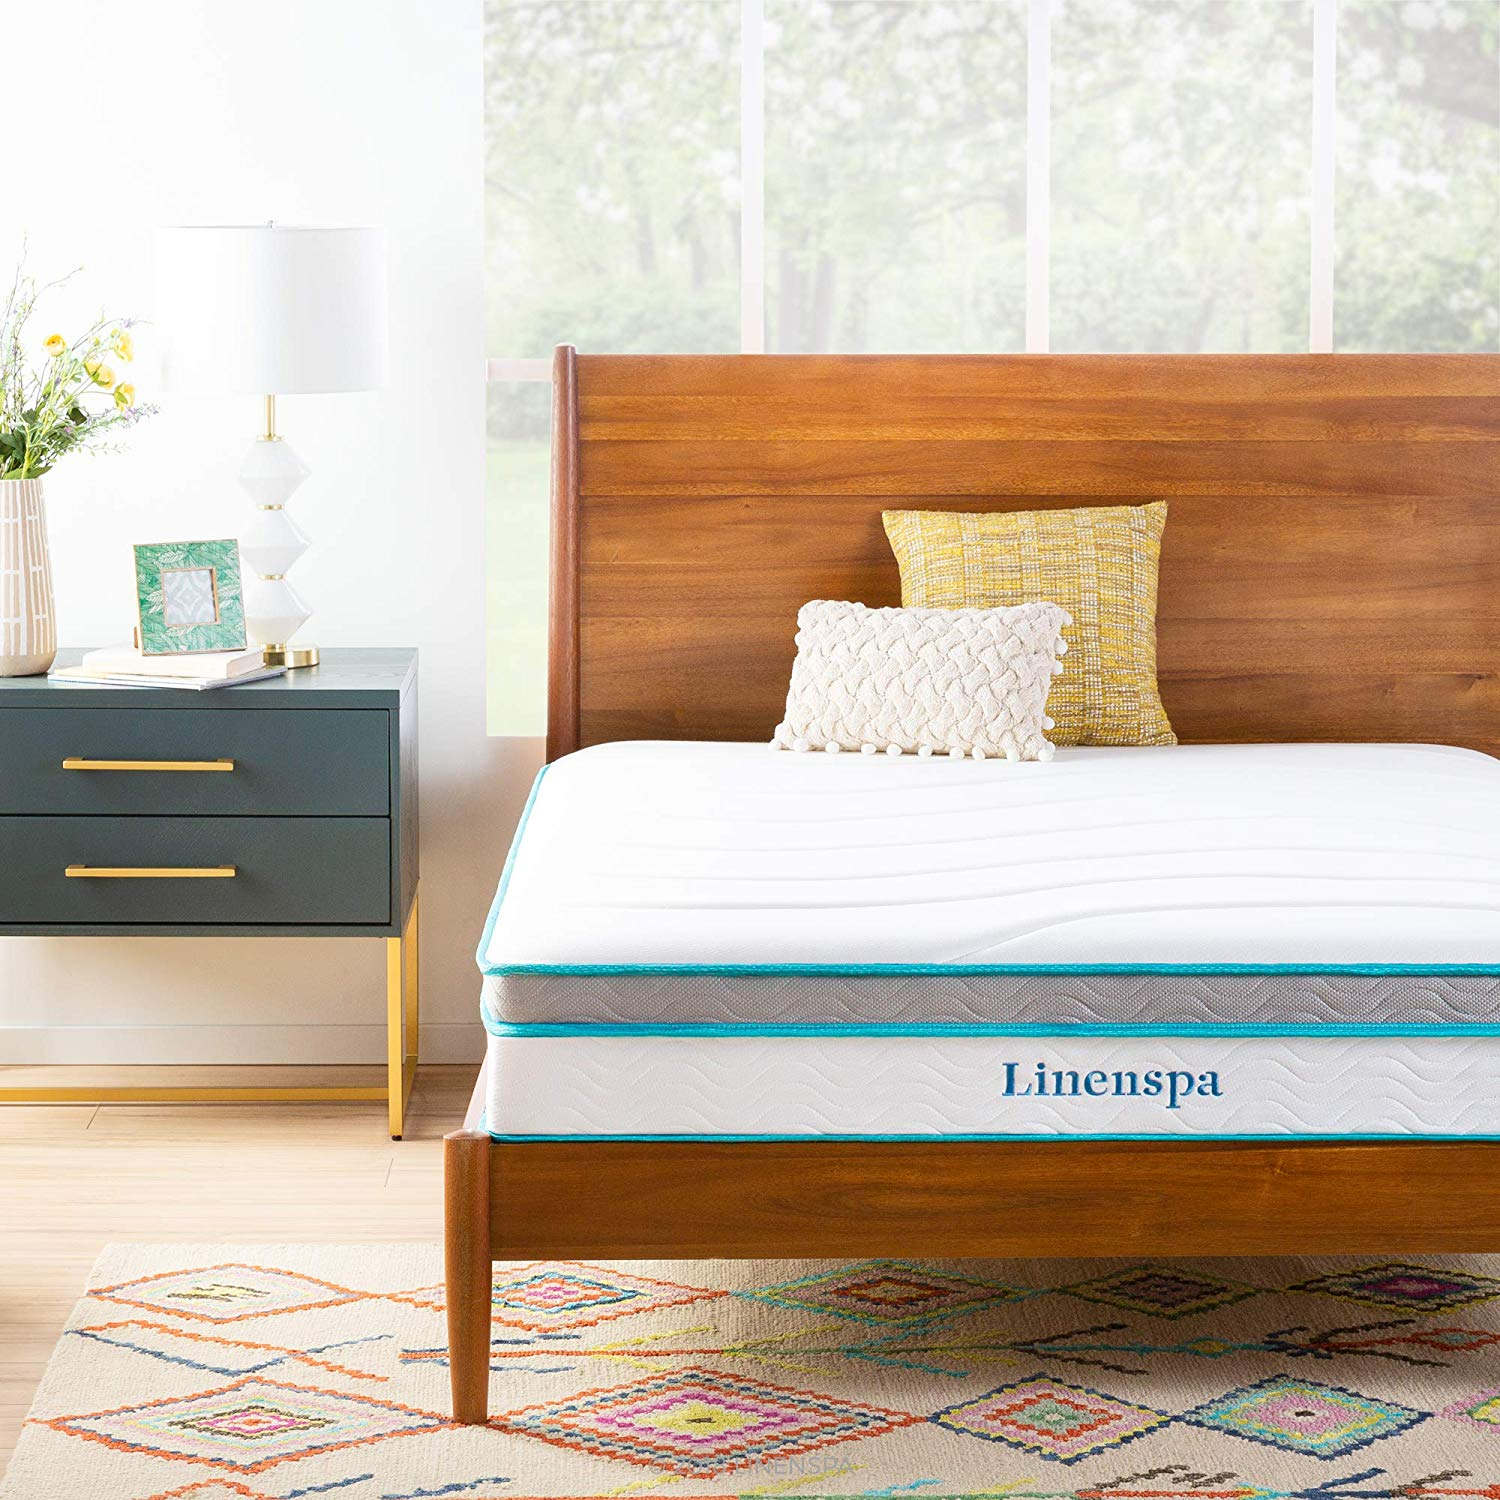 LinenSpa 8´´ Inches Innerspring mattress